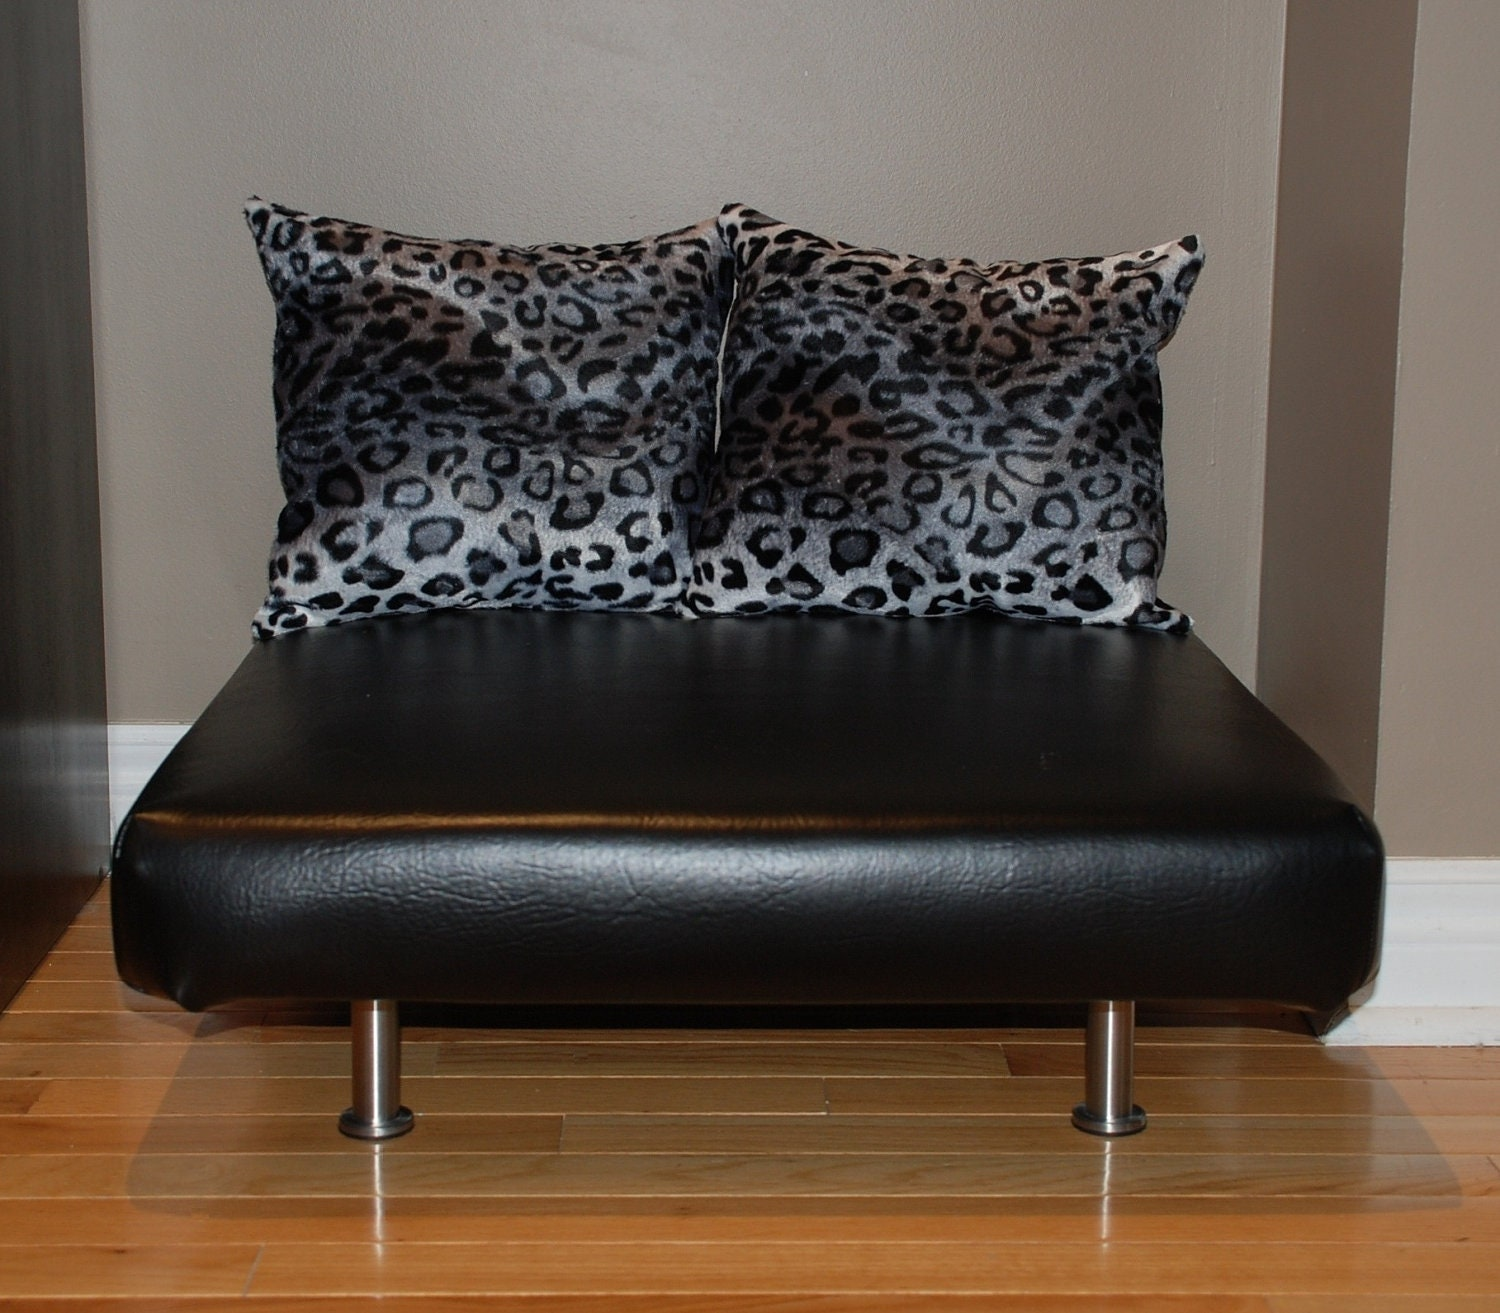 24x24 black faux leather upholstered pet bed cat bed for Upholstered dog bed